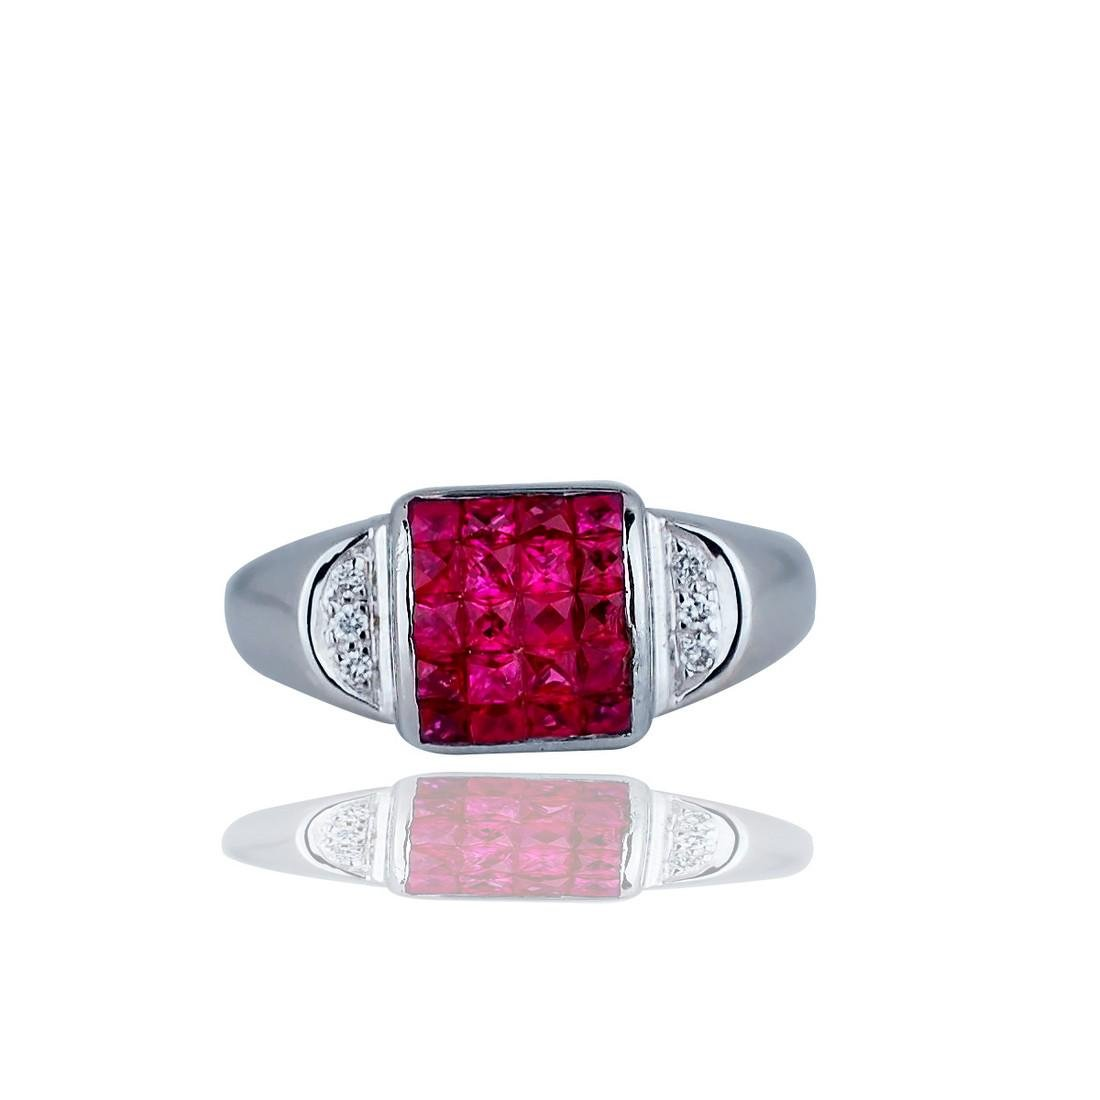 Invisible, Princess Cut Rubies and Diamond, Art Deco 18